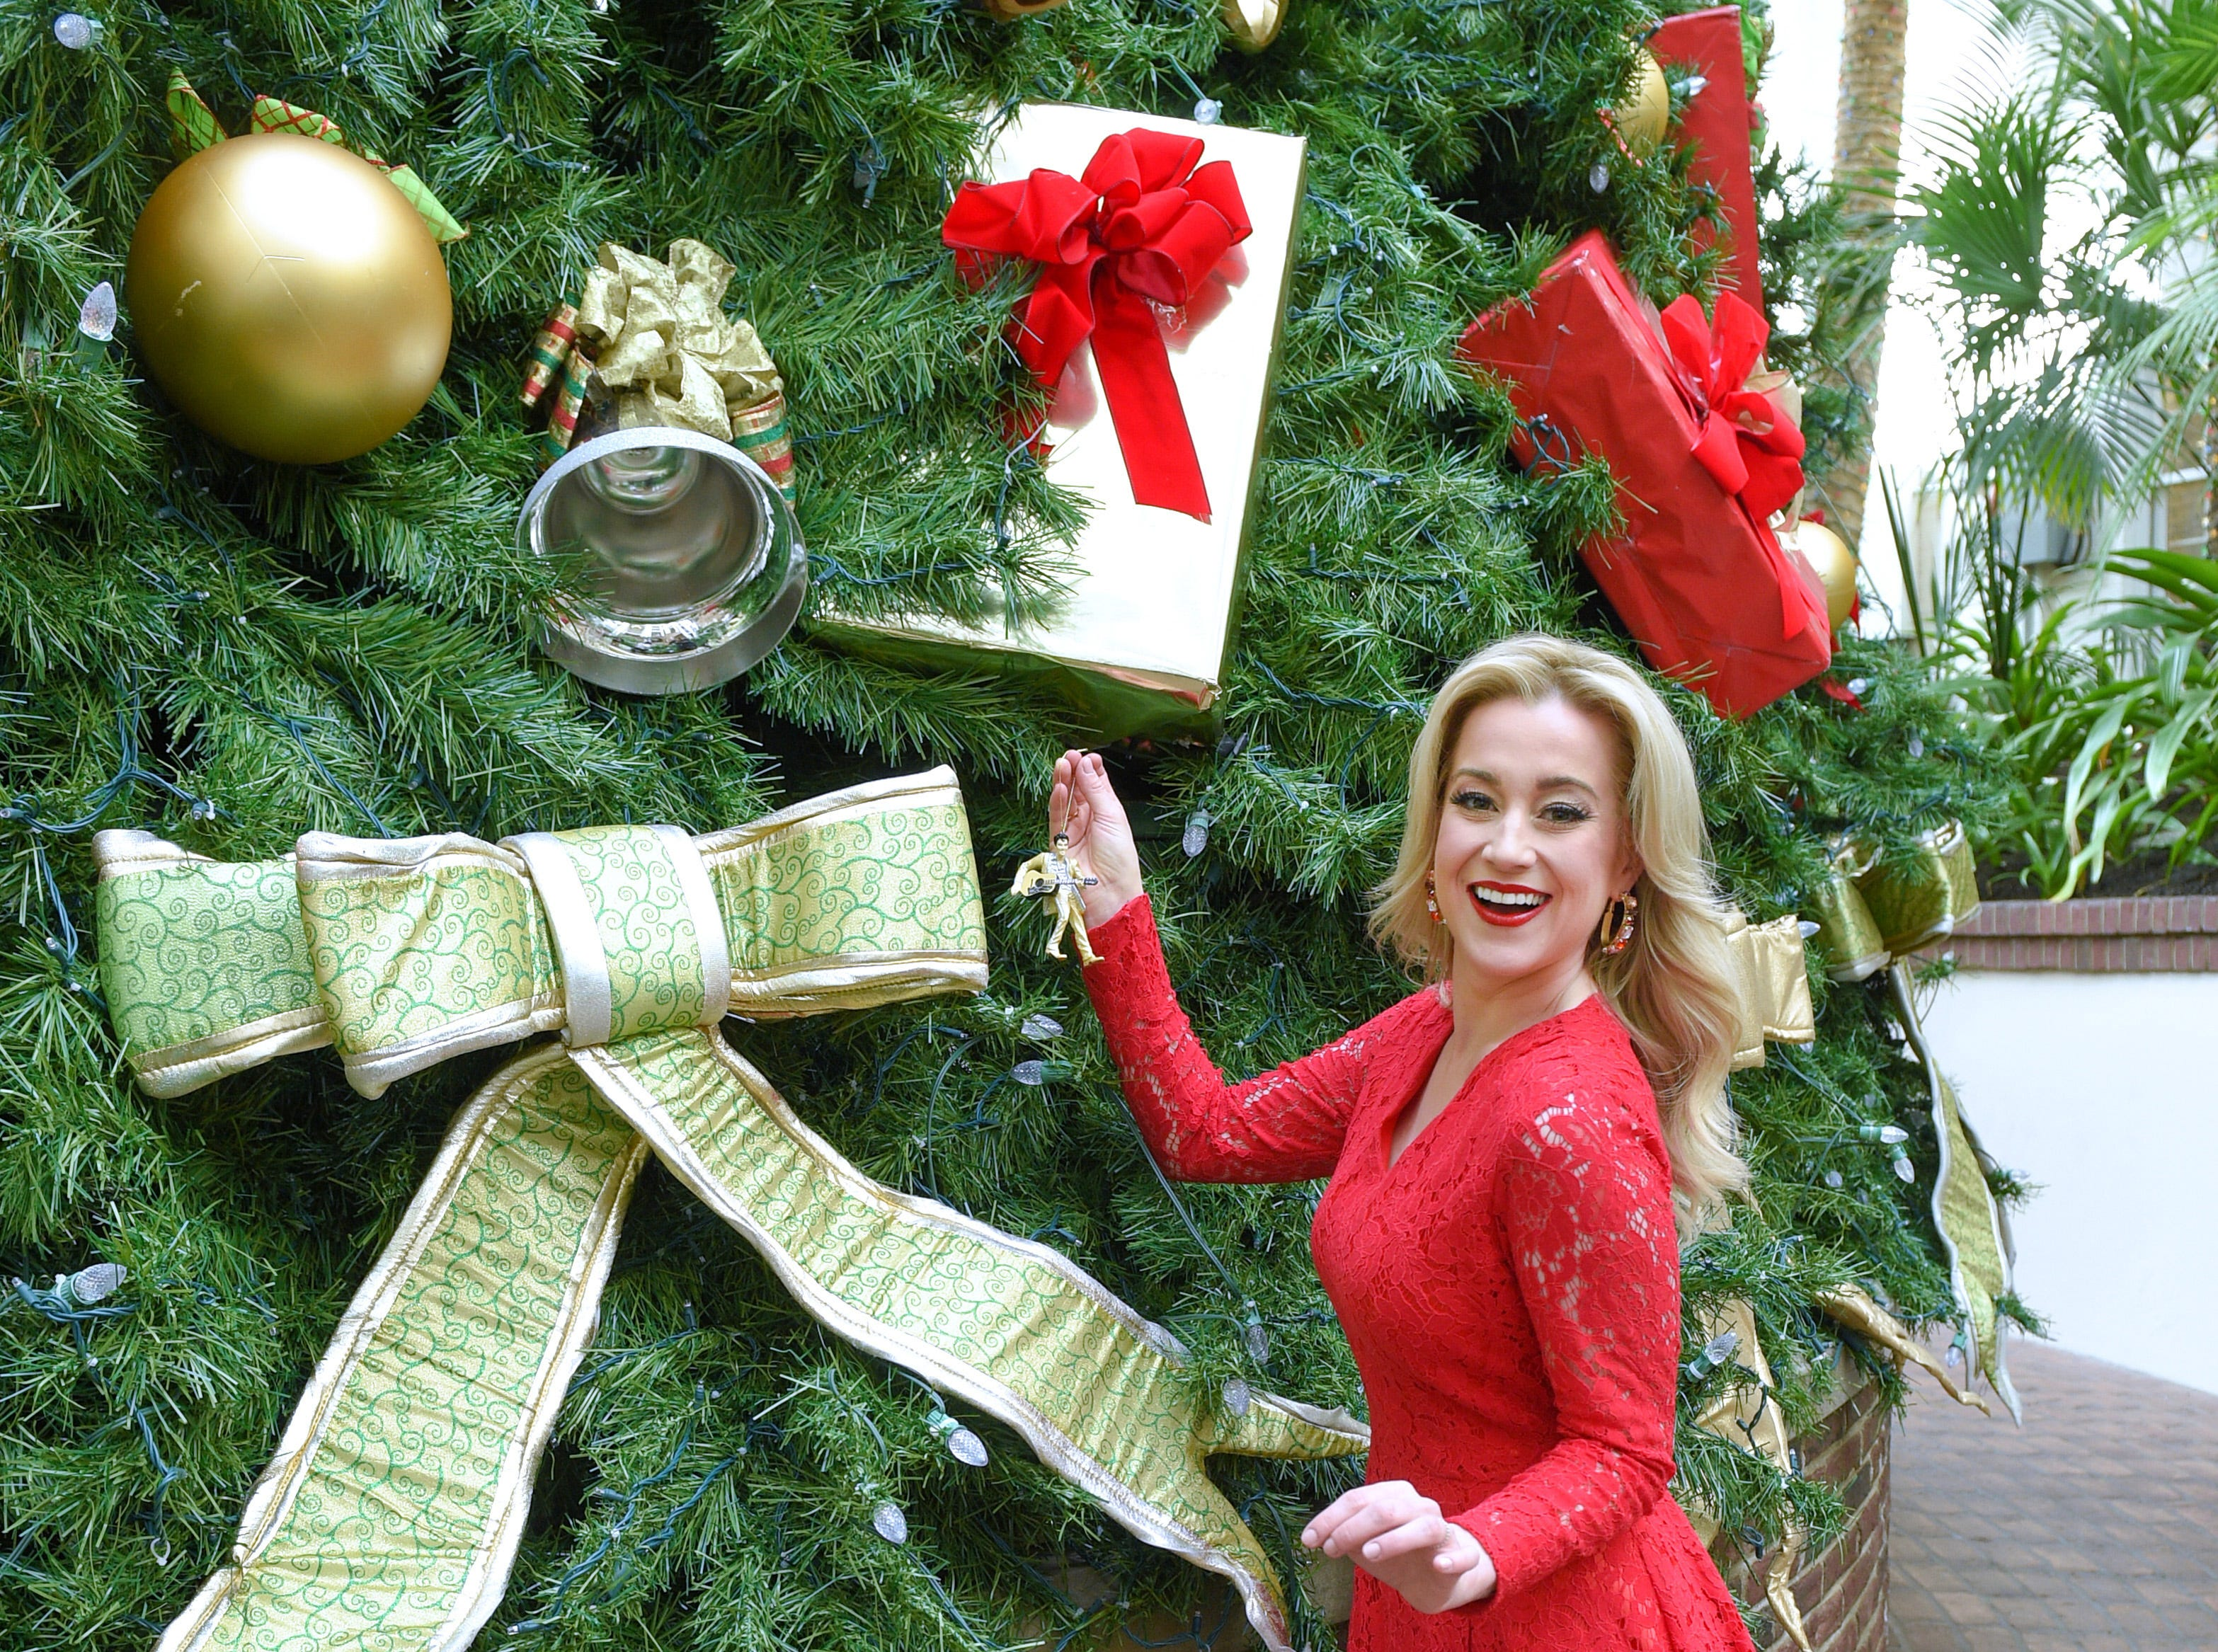 NASHVILLE, TN - NOVEMBER 05:  American country music artist and Emmy-nominated television personality Kellie Pickler is seen hanging a Christmas ornament at the Gaylord Opryland Resort on November 5, 2018 in Nashville, Tennessee.  (Photo by Jason Kempin/Getty Images for Status PR) ORG XMIT: 775252860 ORIG FILE ID: 1057819920